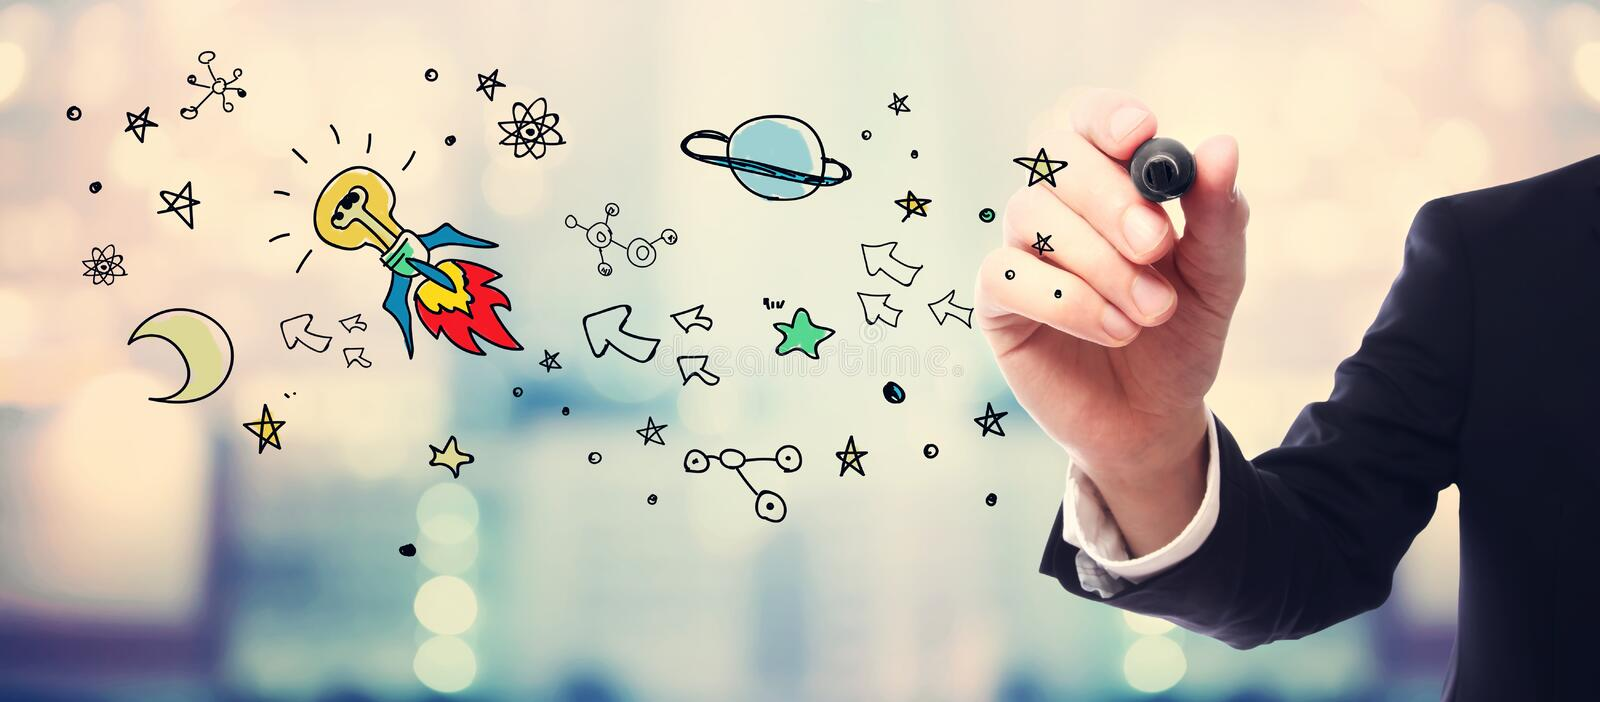 Businessman drawing Idea Rocket concept royalty free stock photography